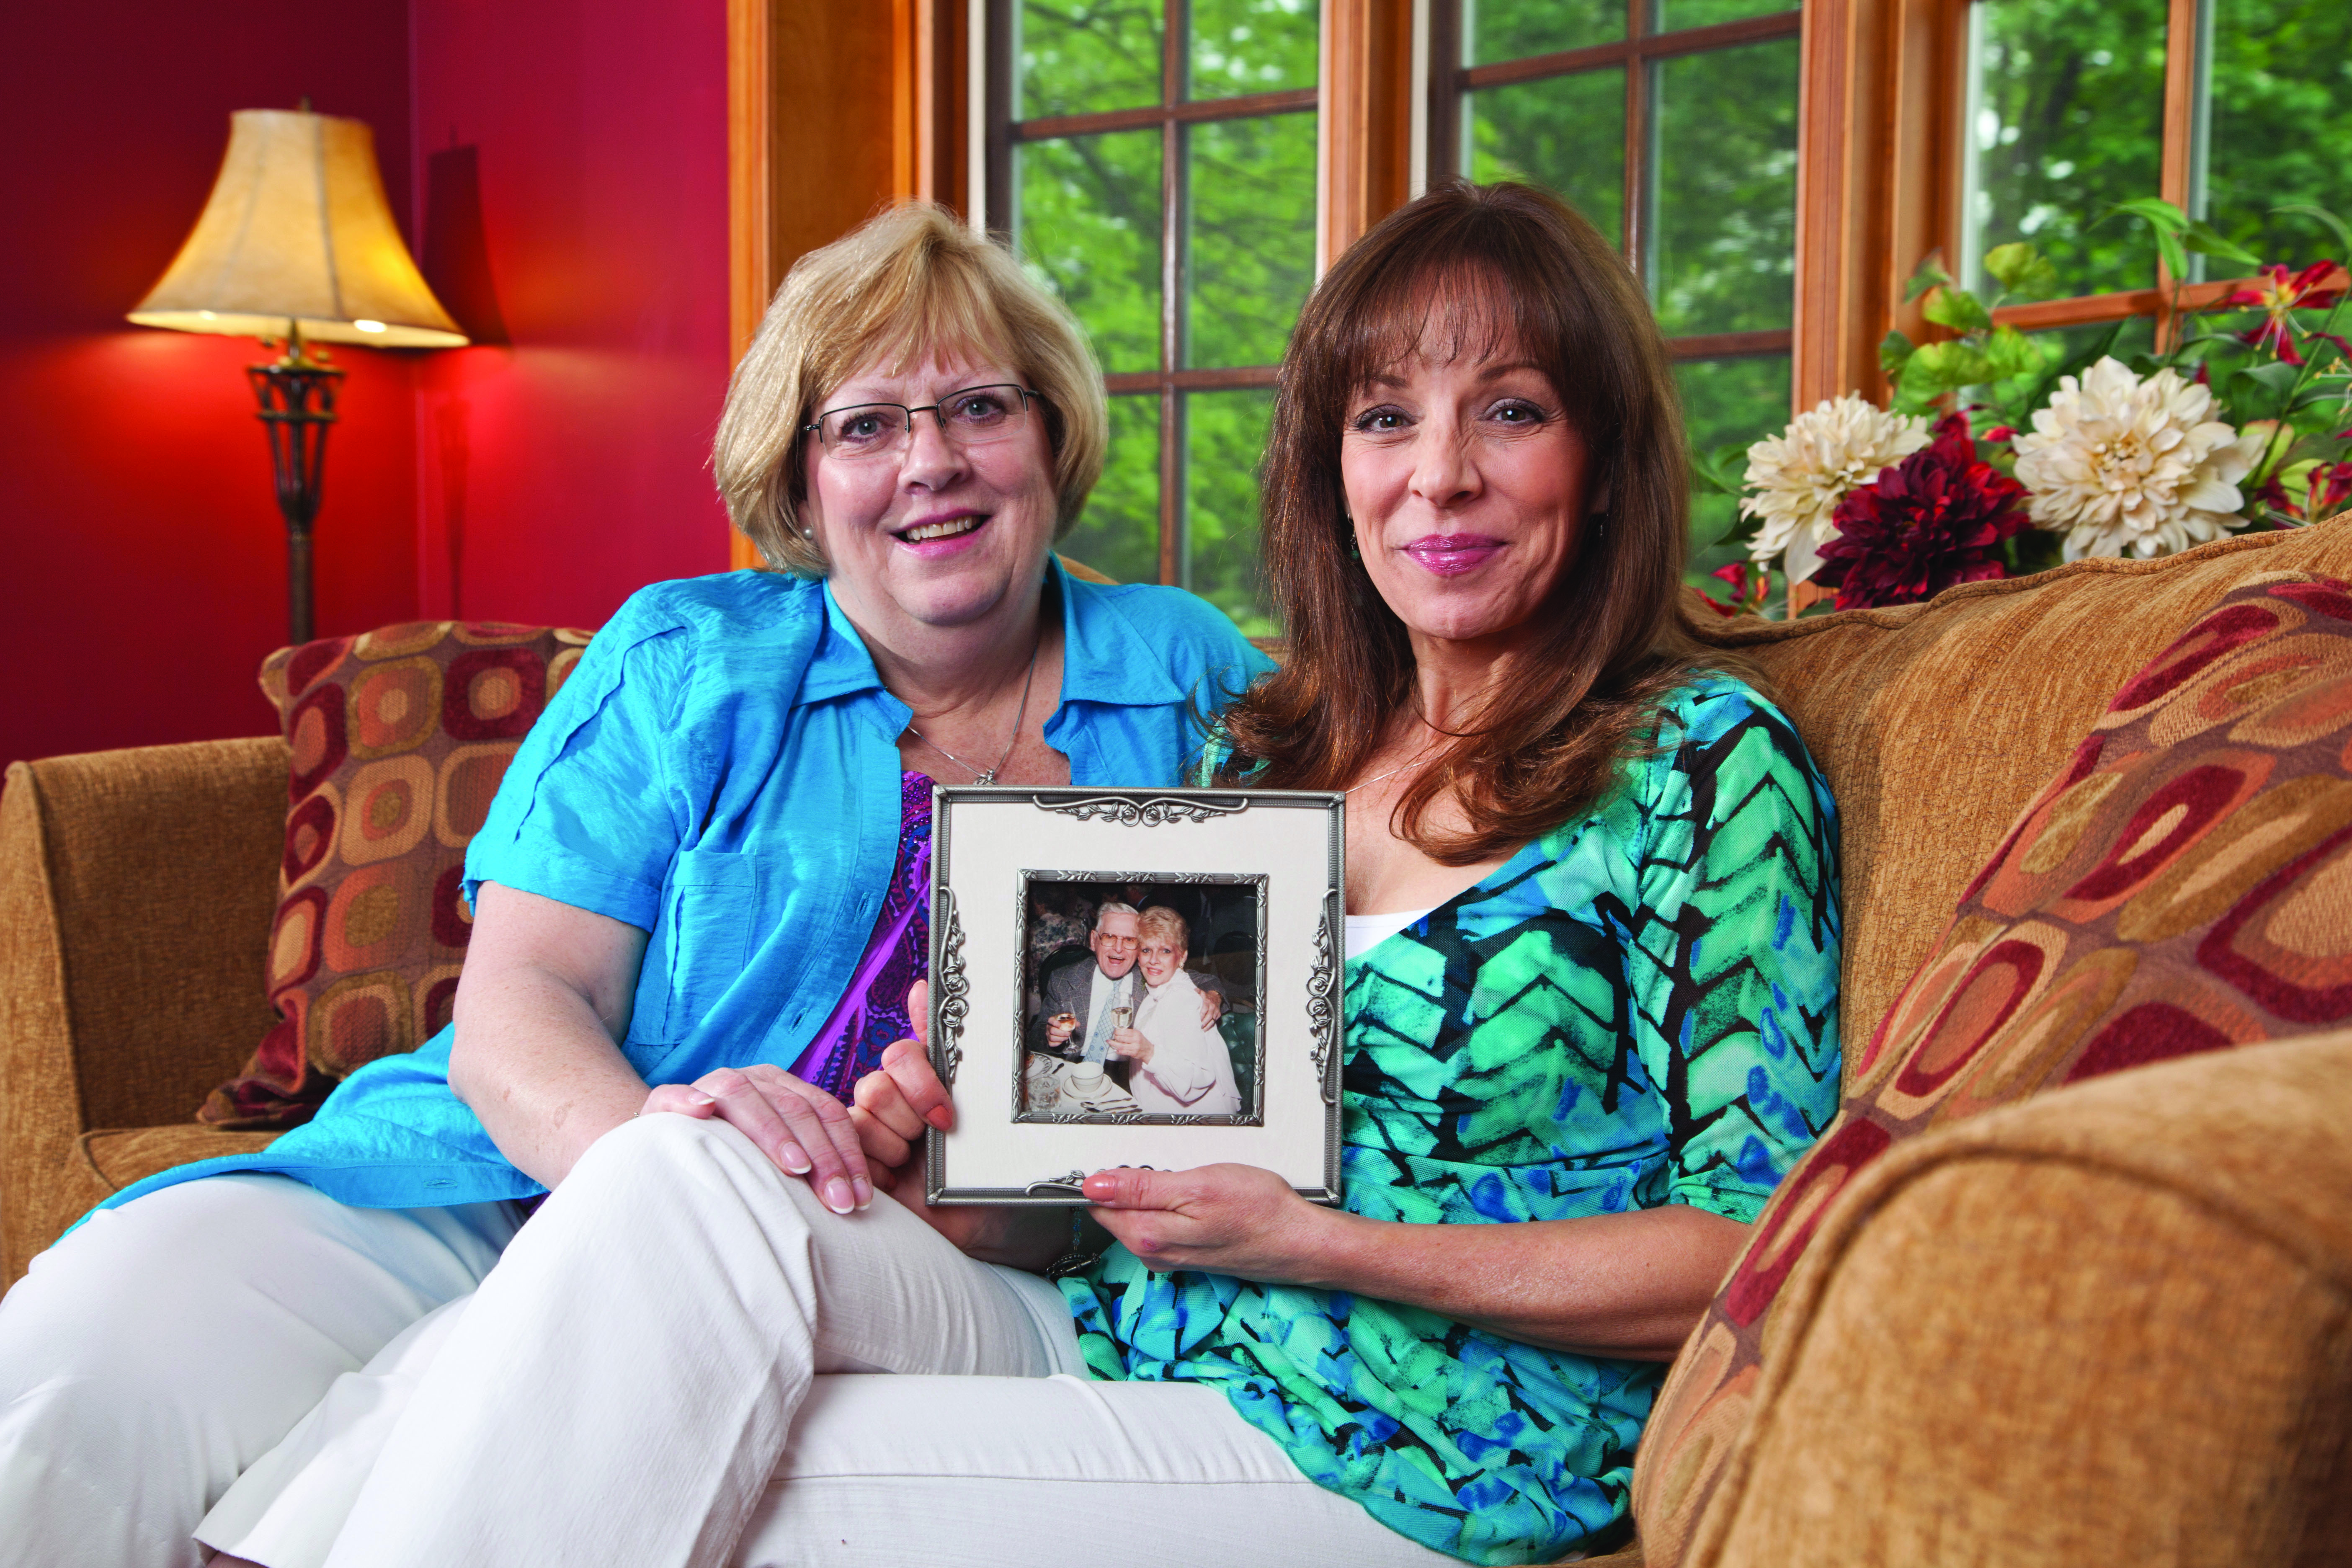 Hospice Care, End-of-Life Planning